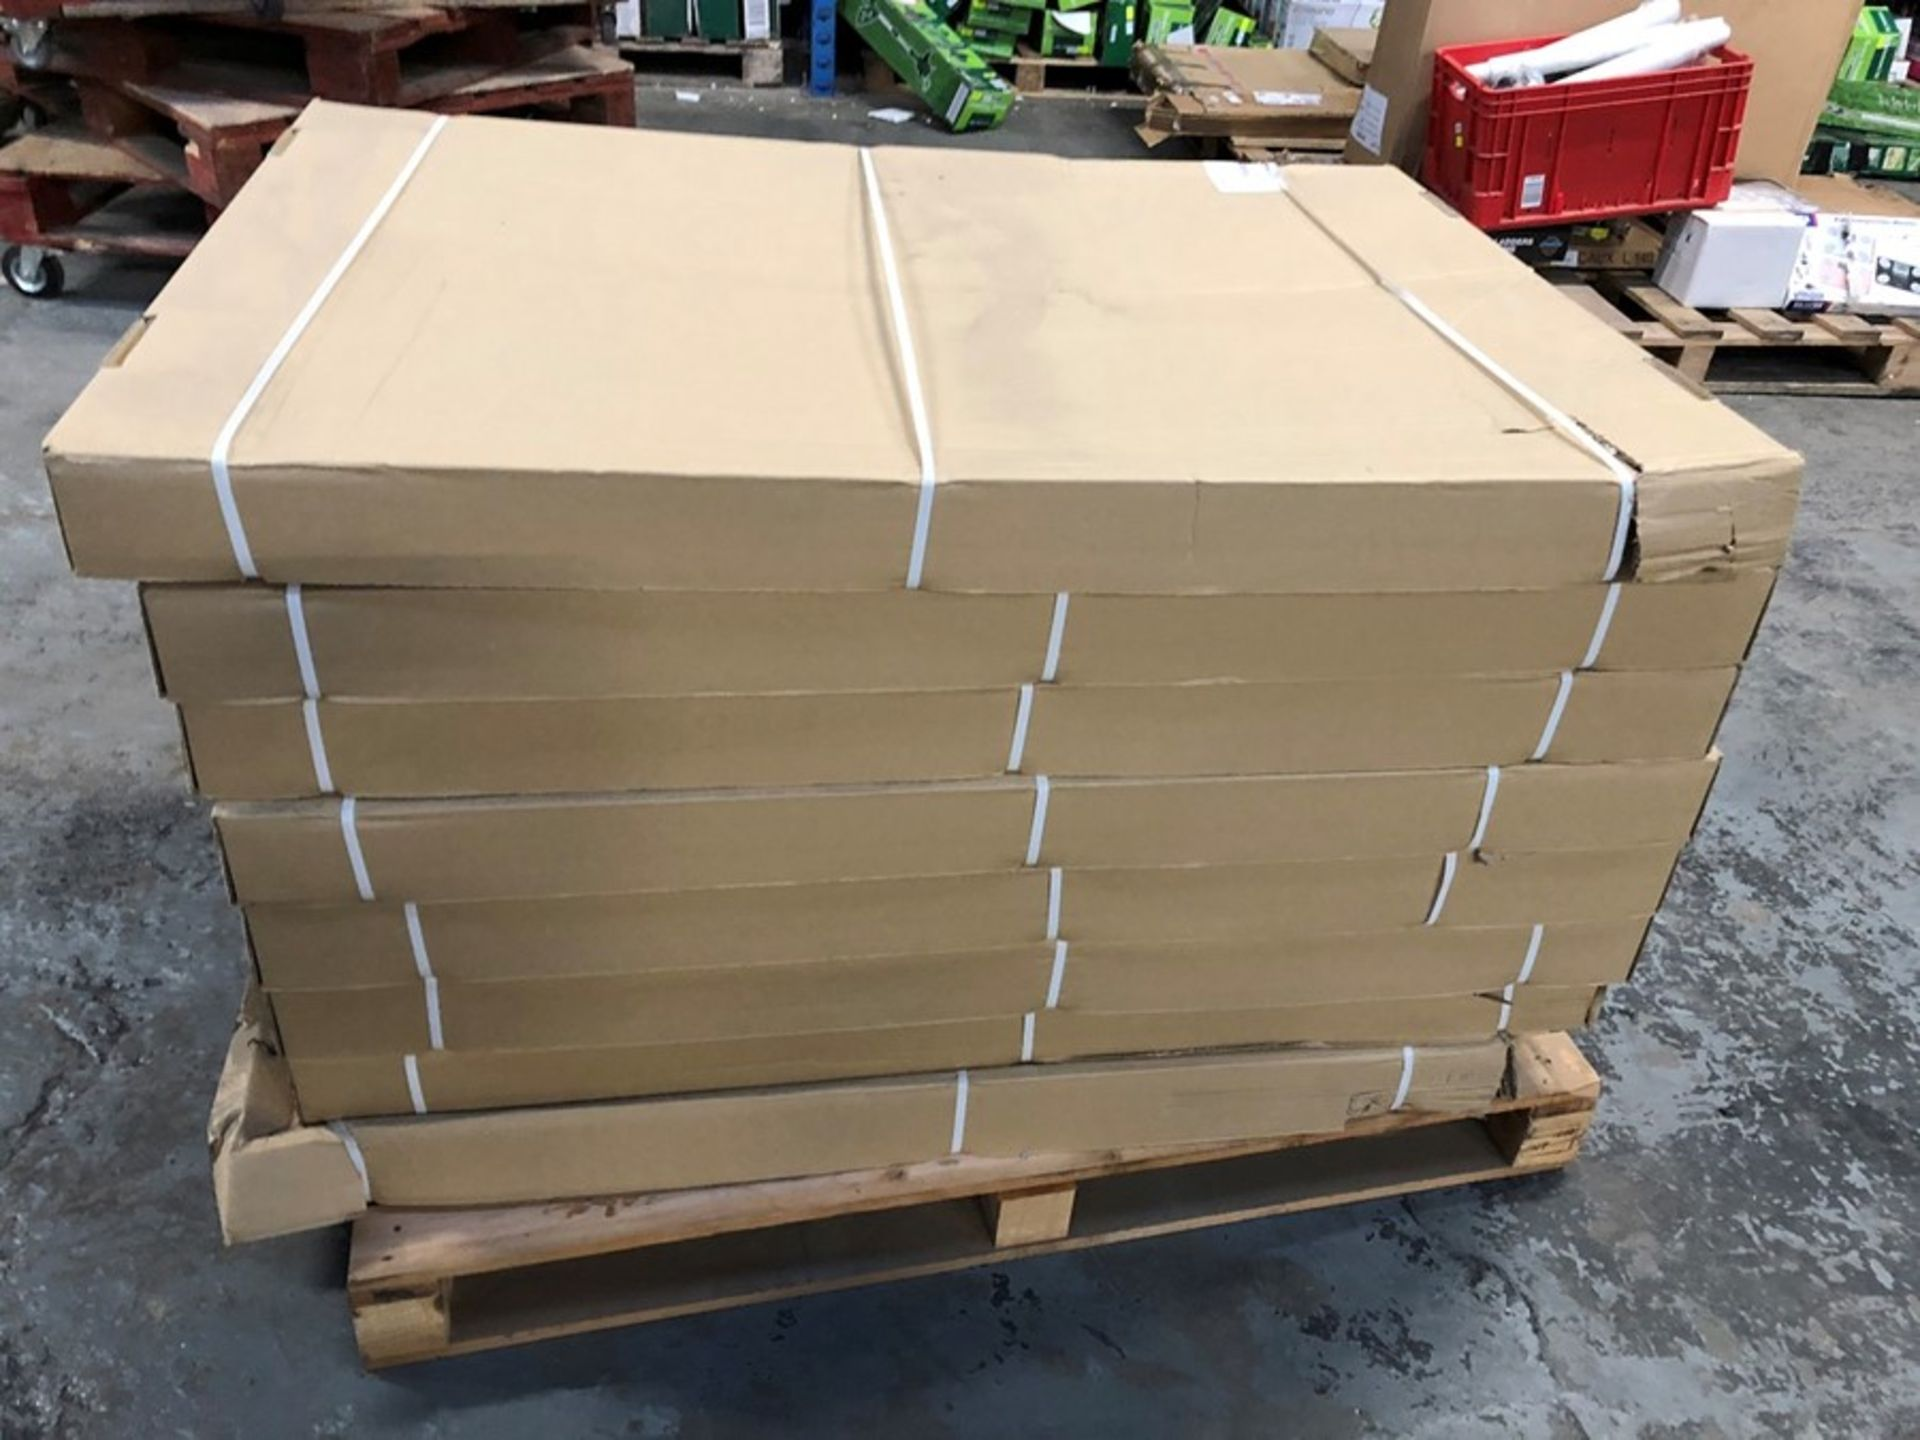 Lot 5 - 1 LOT TO CONTAIN ASSORTED OFFICE AND WORKPLACE PRODUCTS / INCLUDING CARDBOARD WHEEL, CARDBOARD